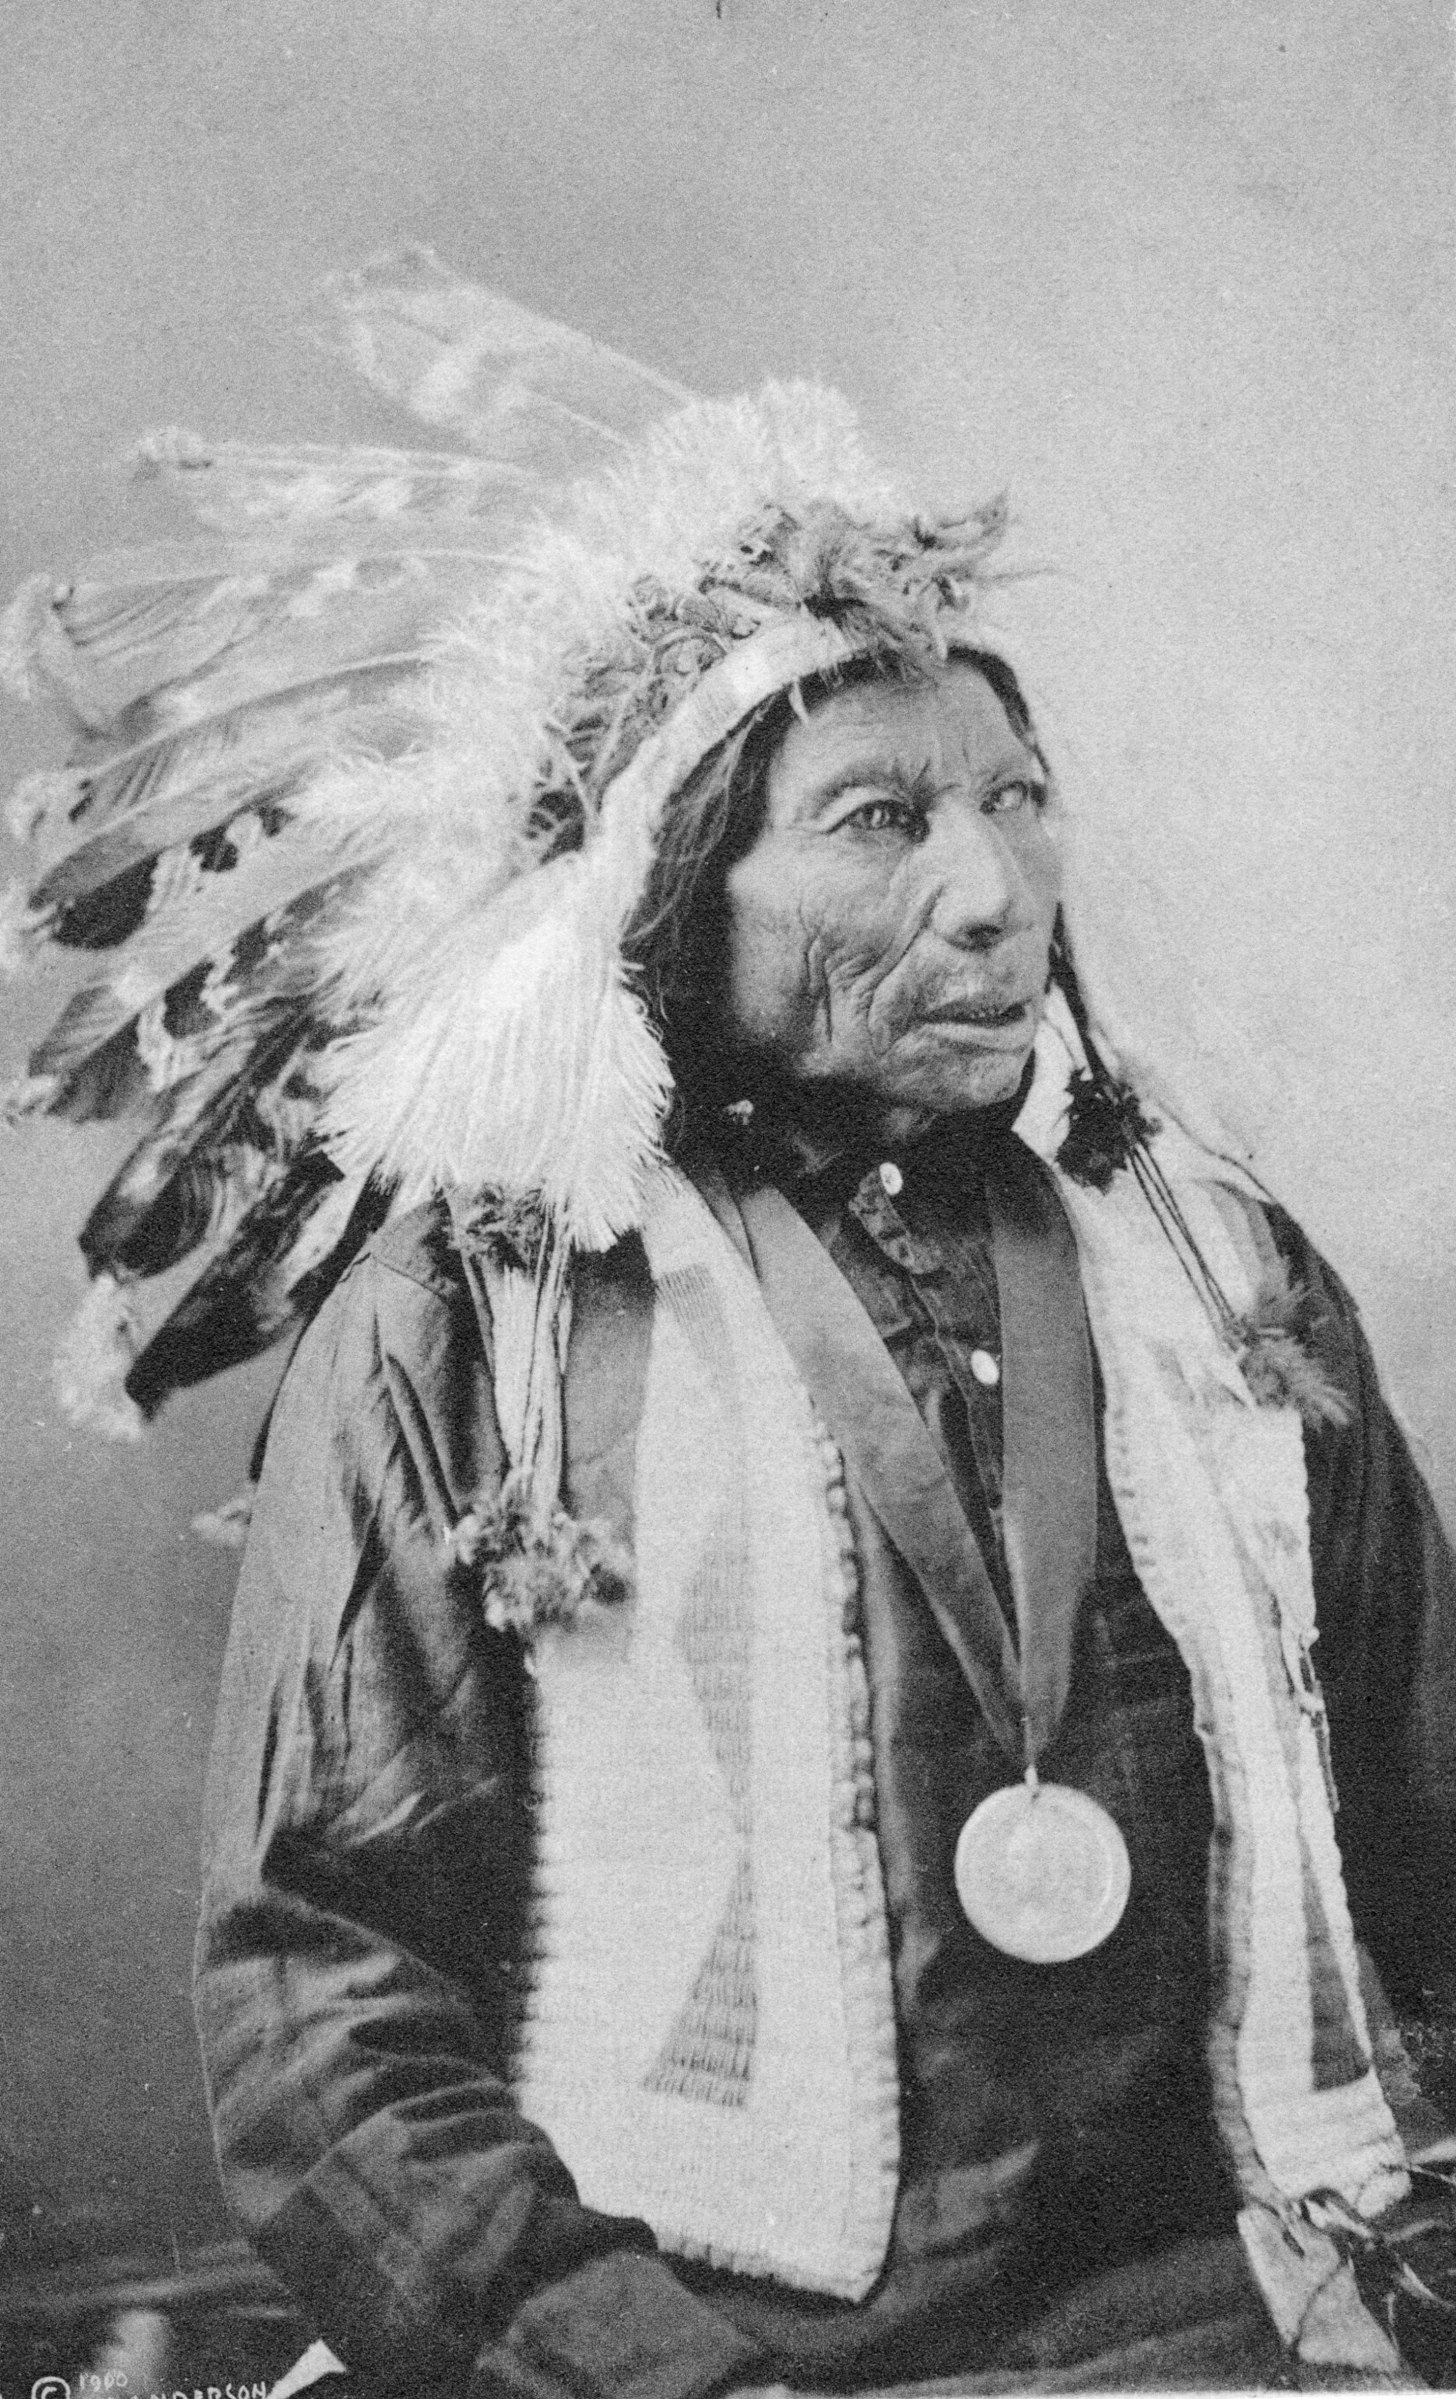 How To Make An Authentic Sioux Indian Headdress